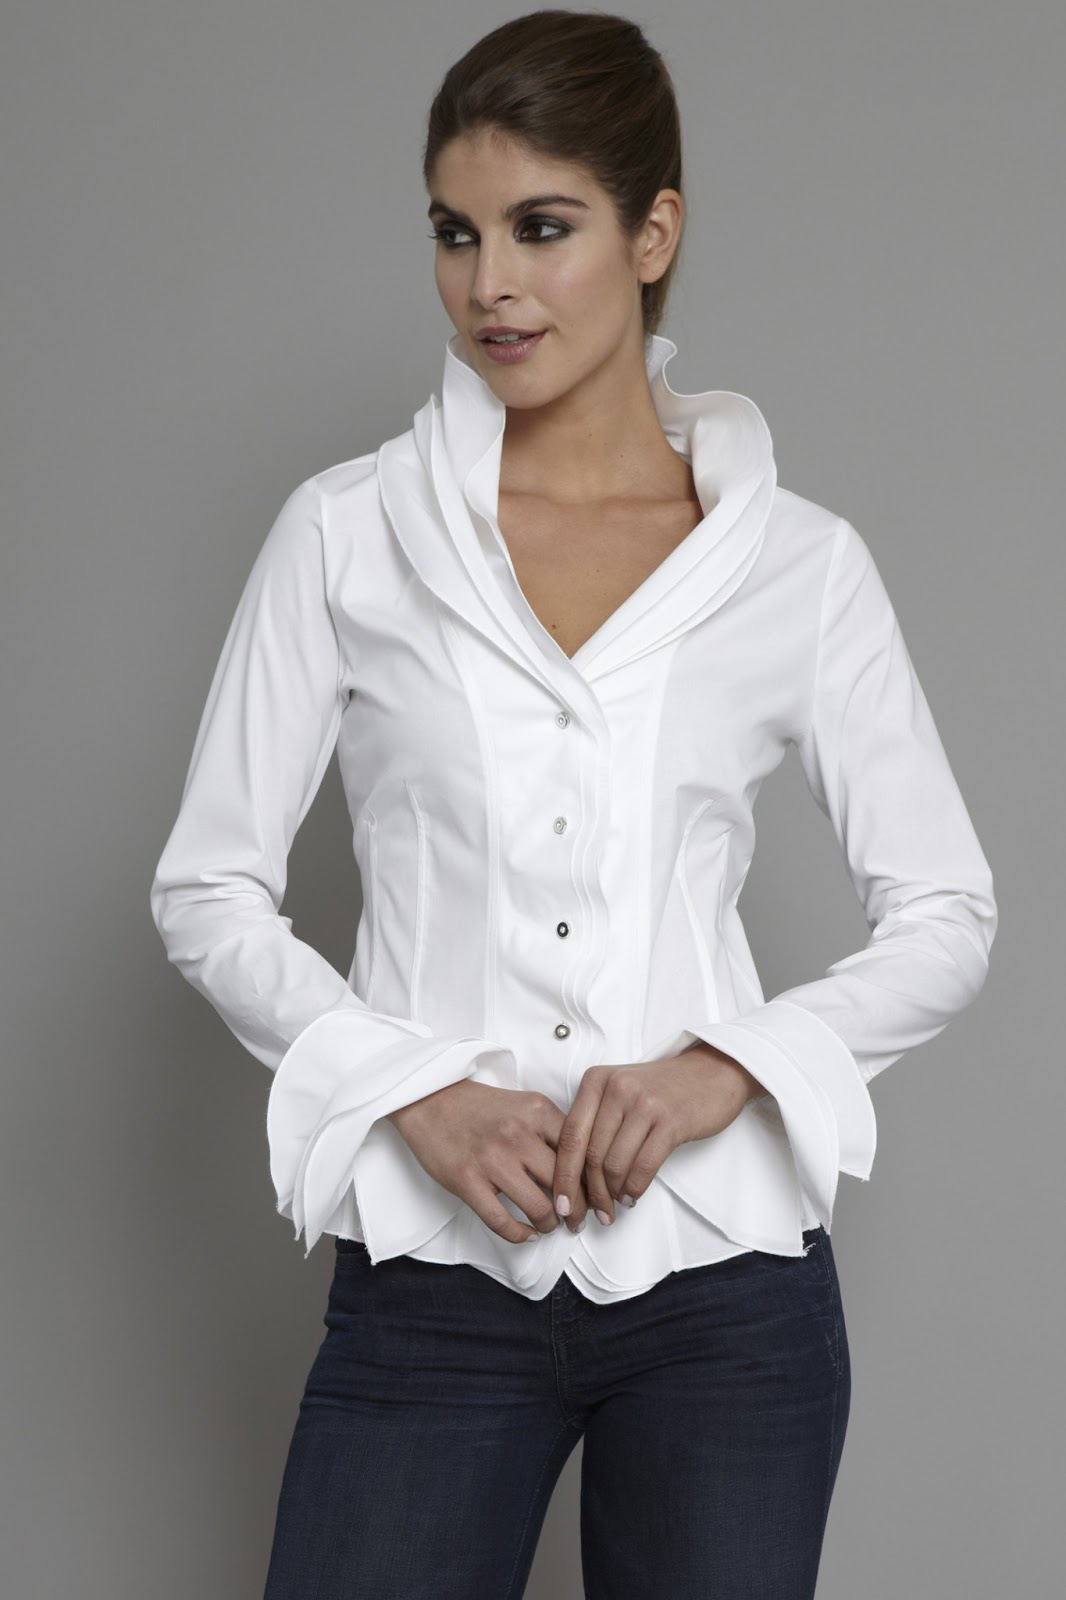 Find great deals on eBay for white dress blouses for women. Shop with confidence.